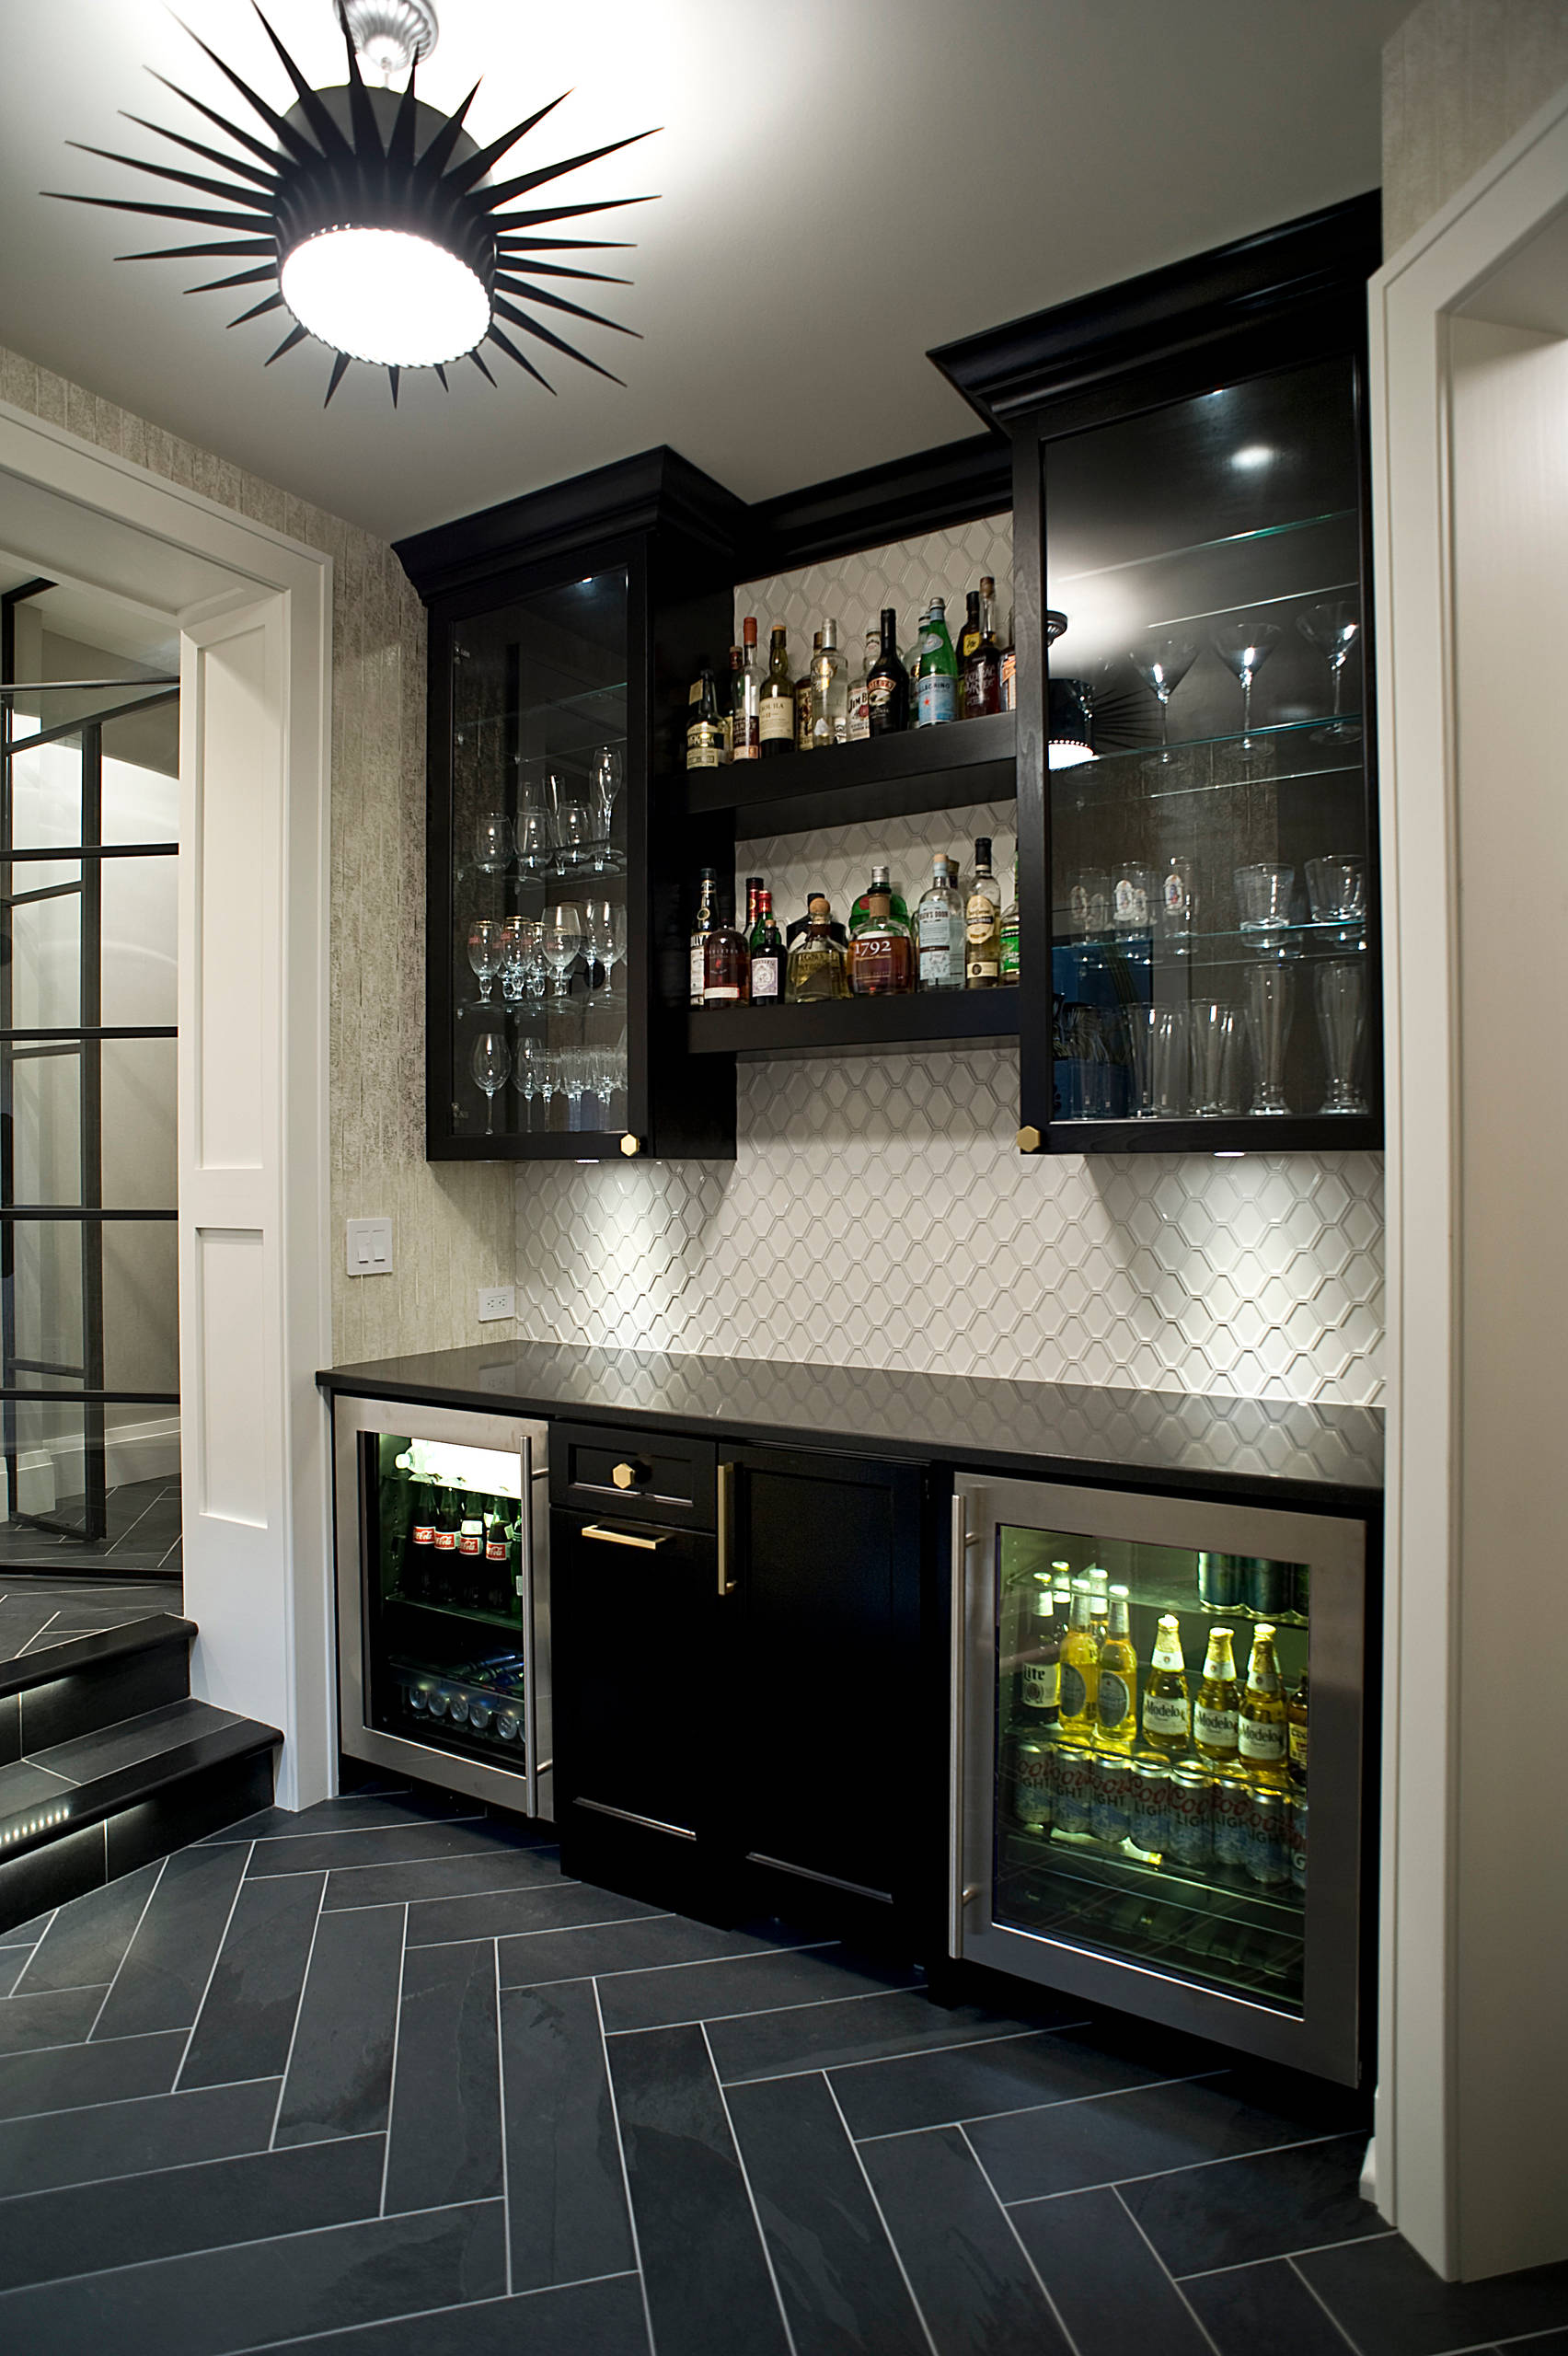 75 Beautiful Home Bar With Glass Front Cabinets Pictures Ideas December 2020 Houzz